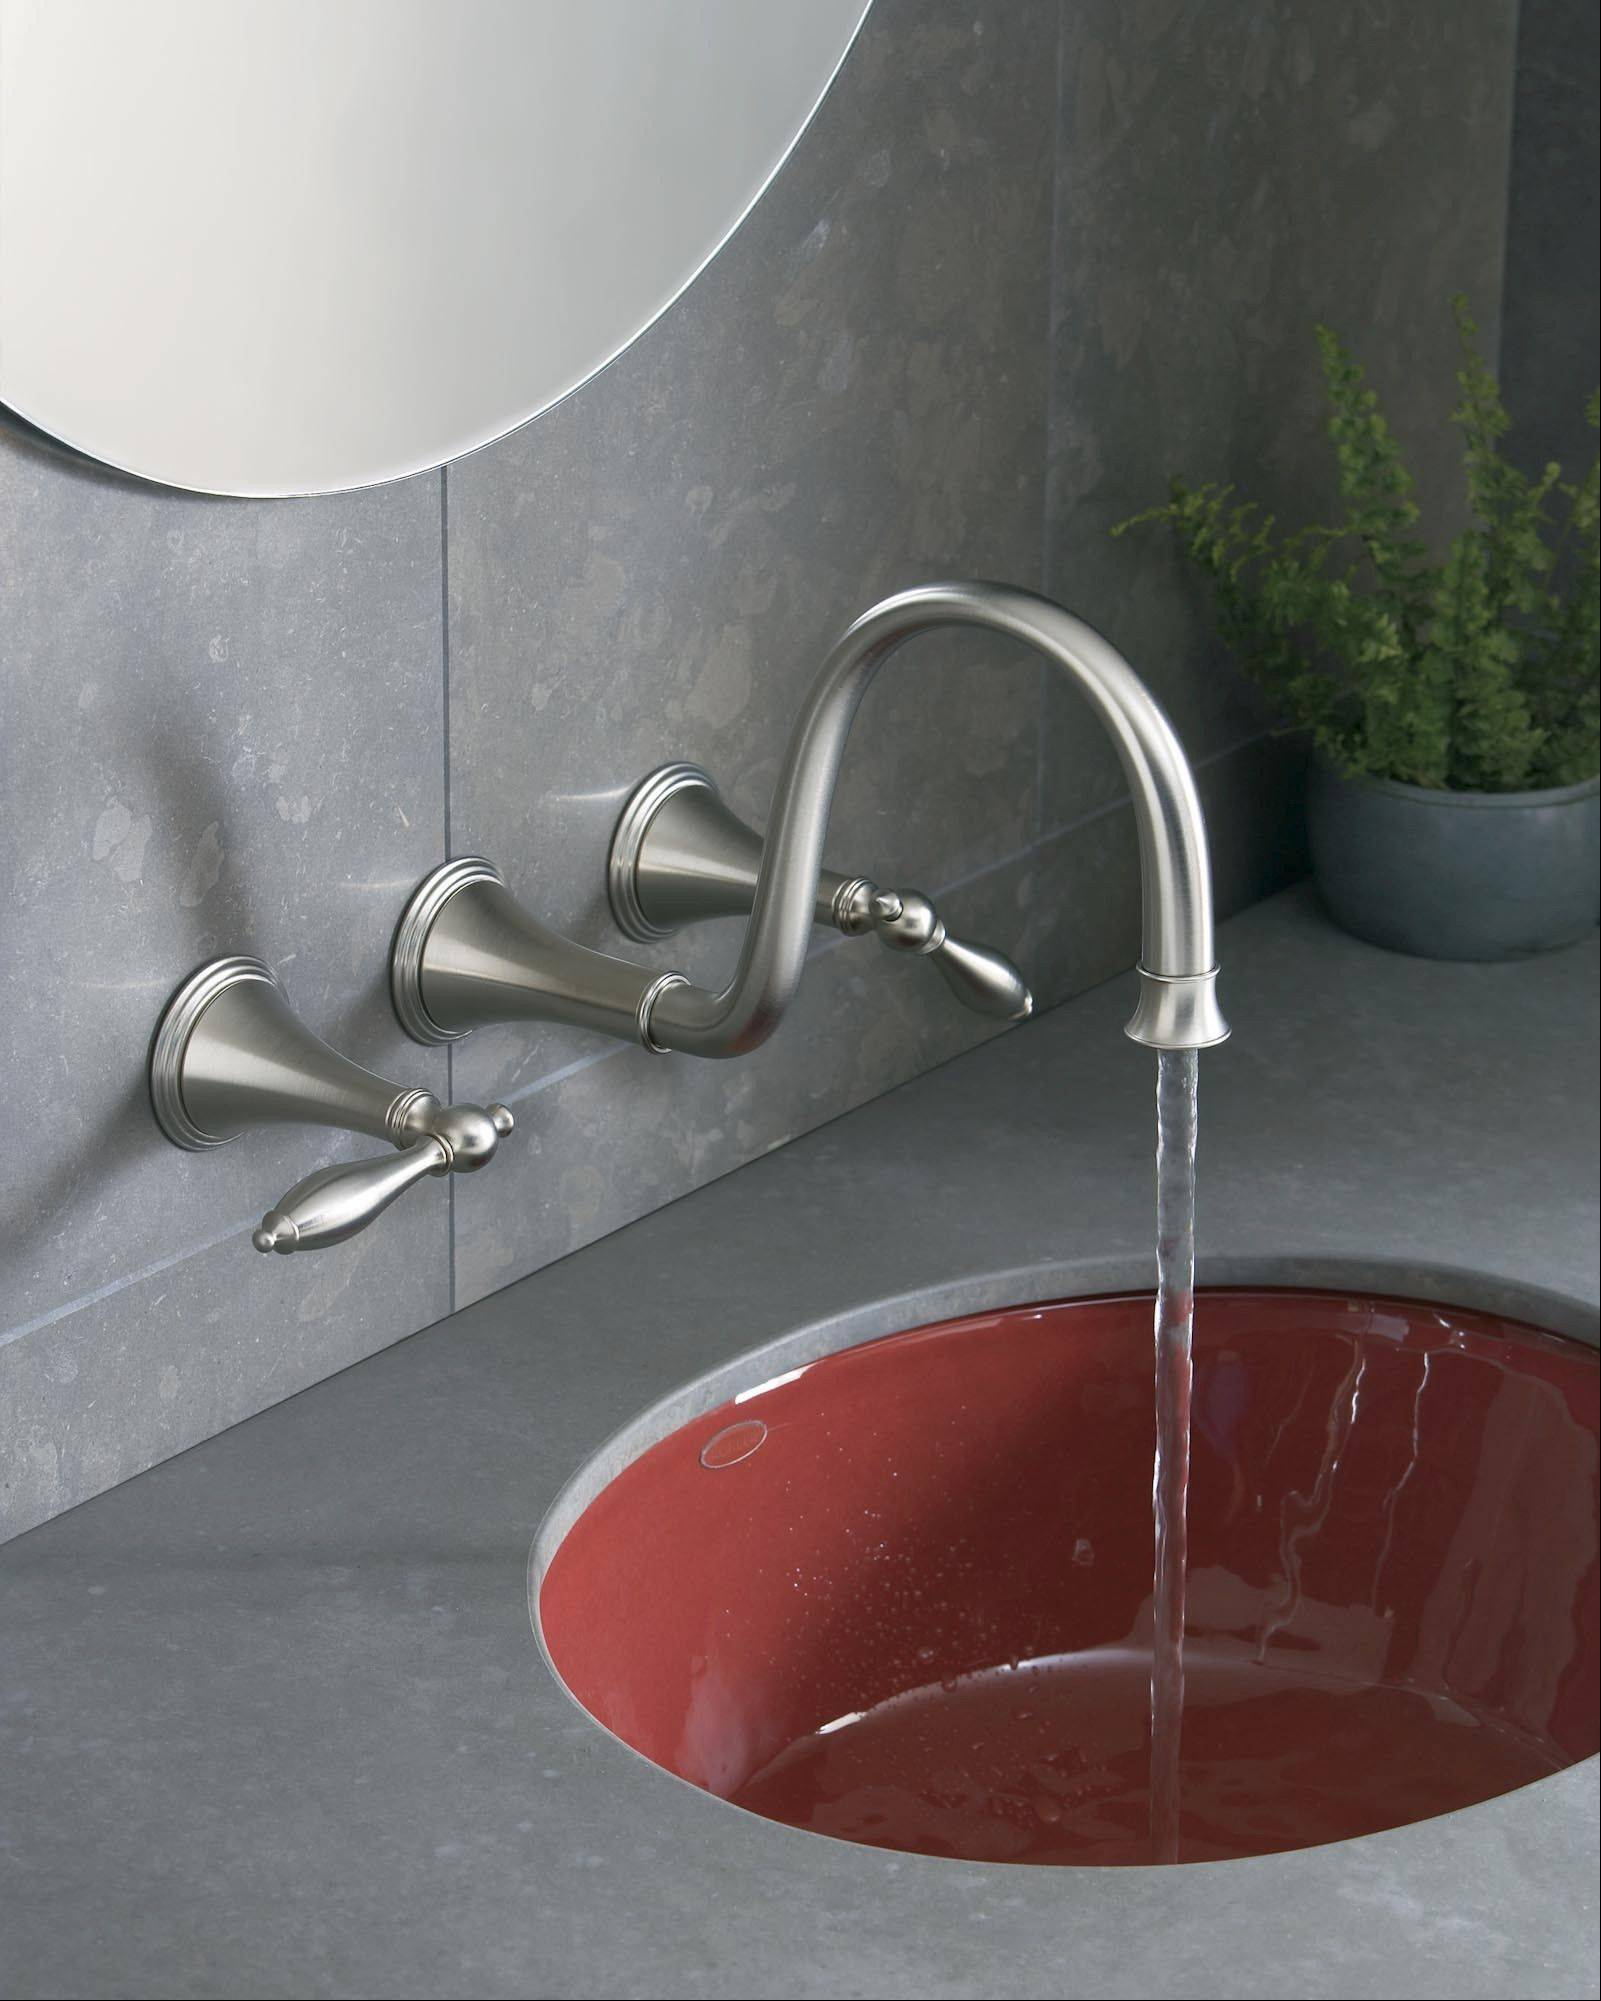 Wall Mounted Bathroom Faucets Provide A Very Trendy Look And Can Make It  Easier To